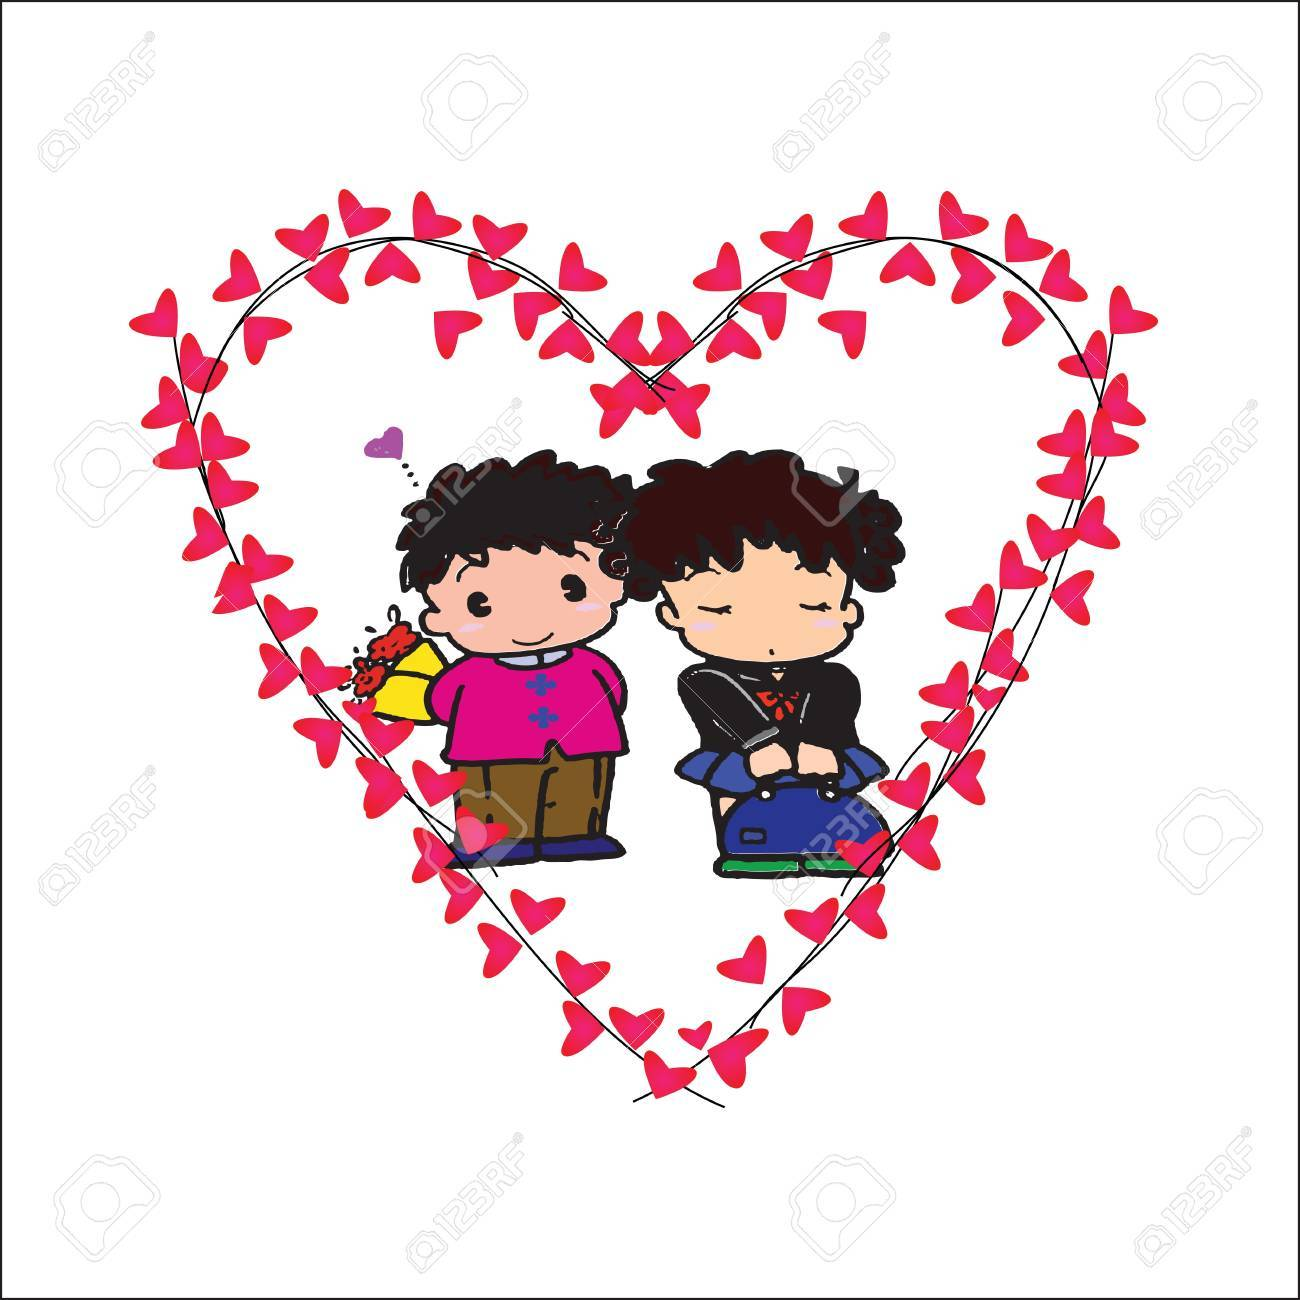 Couple Of Frame In Heart On White Background Stock Photo, Picture ...